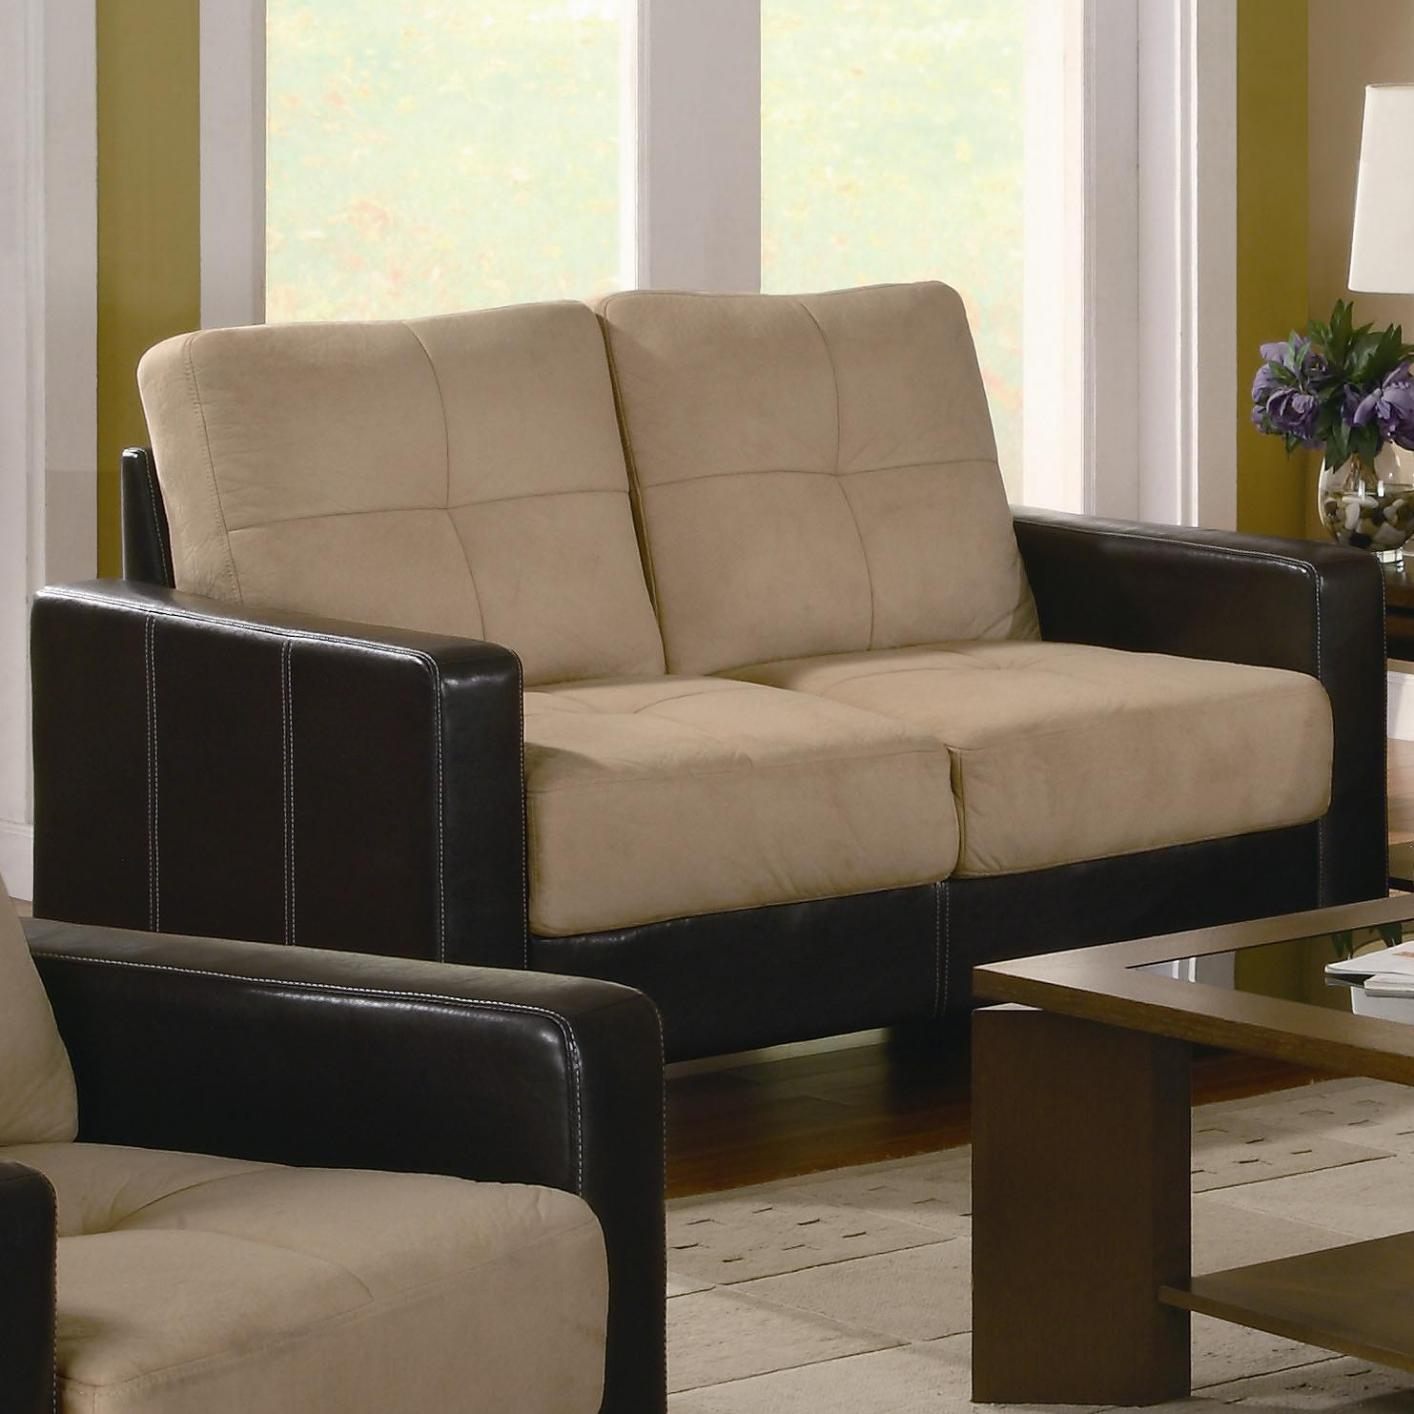 Beige Leather Sofa Loveseat and Chair Set Steal A Sofa Furniture